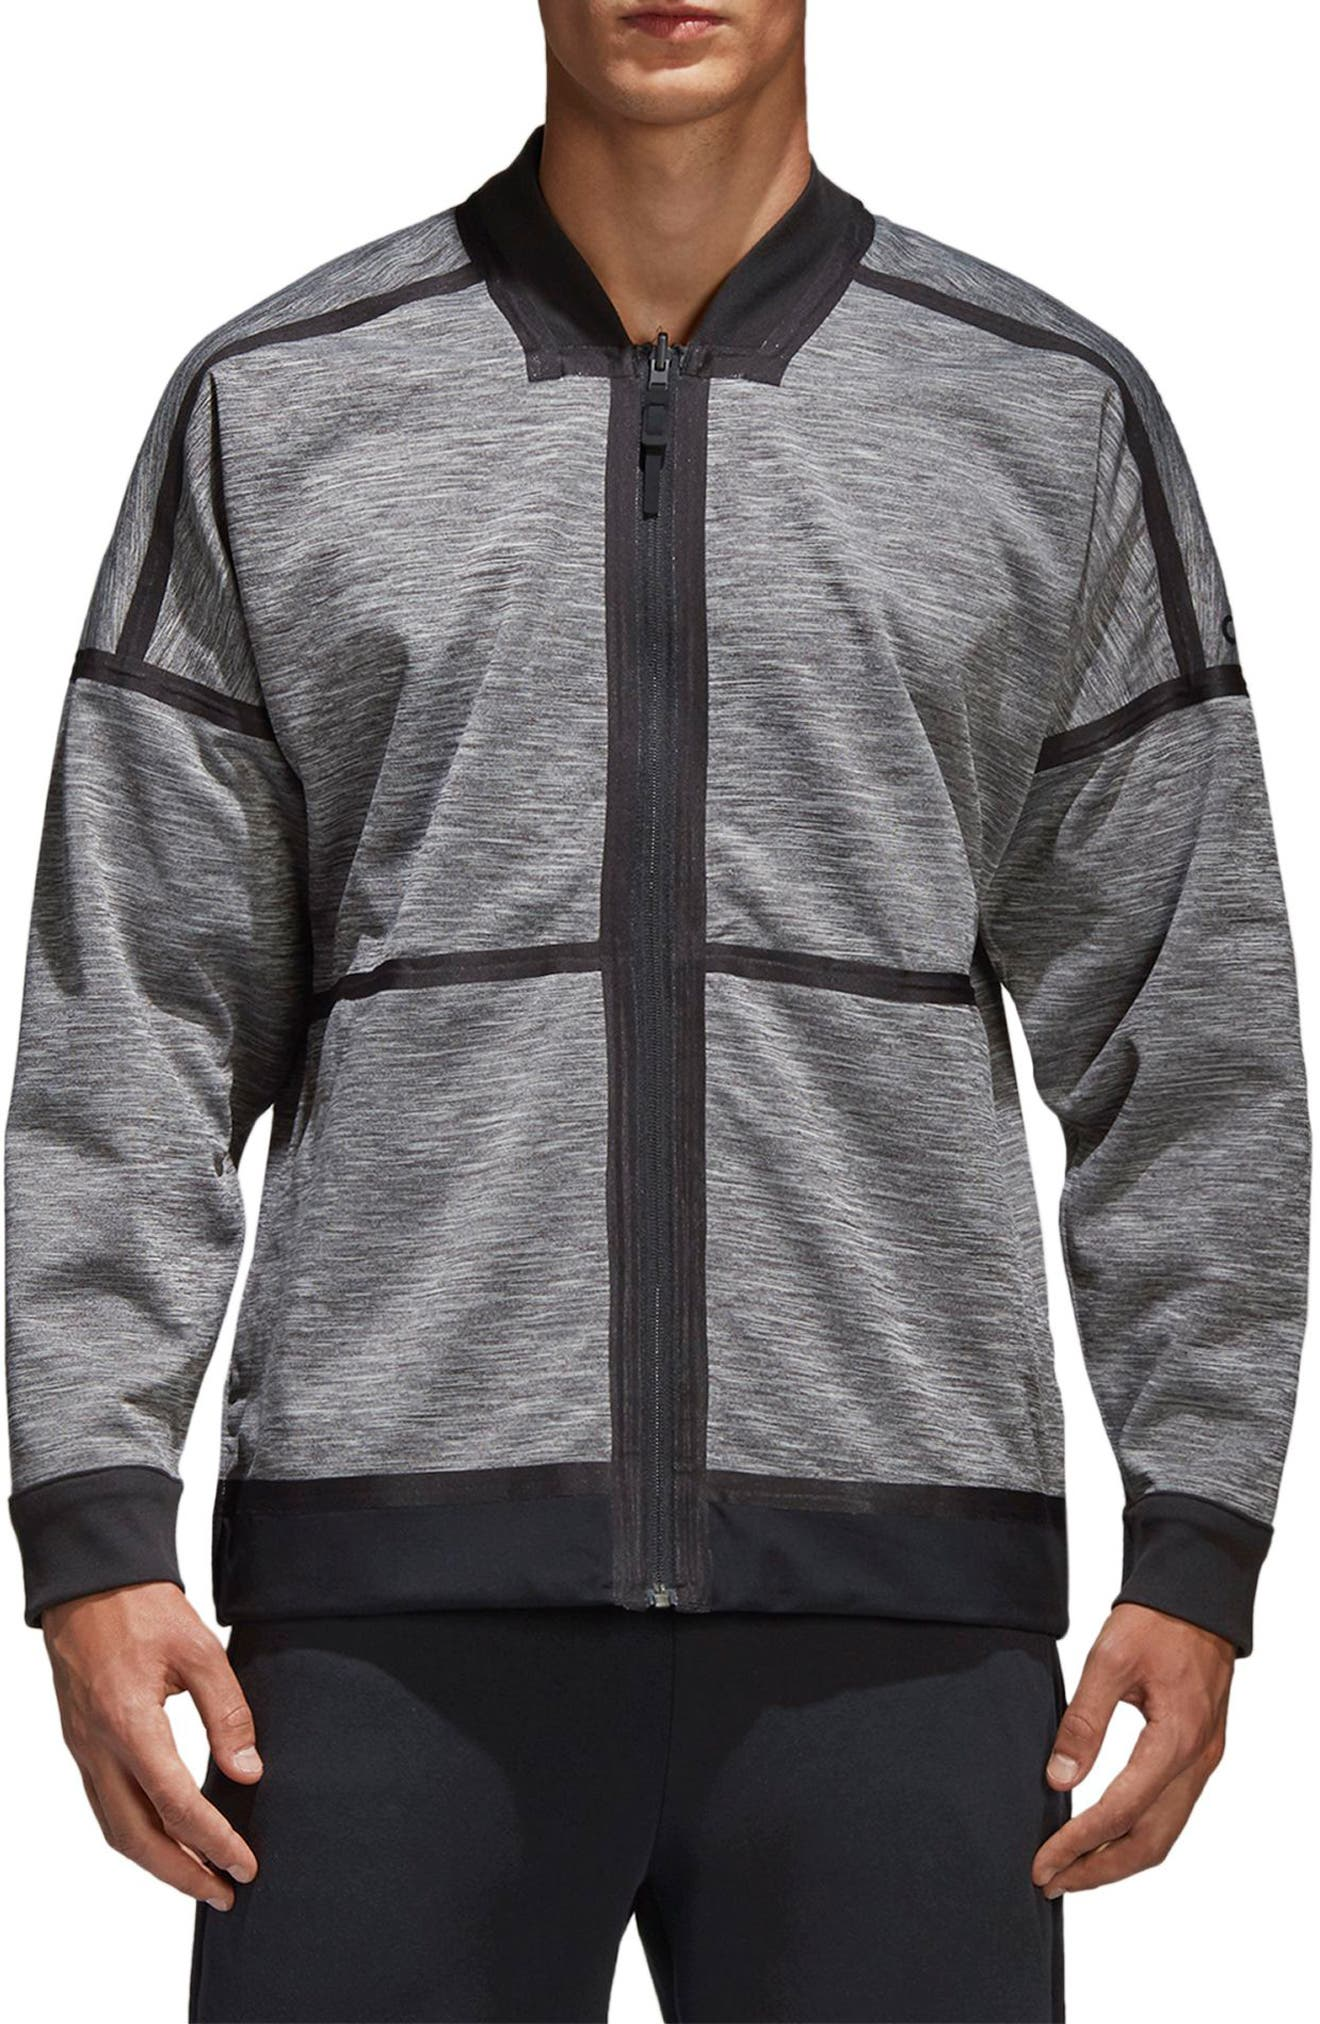 Z.N.E. Reversible Ventilated Jacket,                             Main thumbnail 1, color,                             BLACK / STORM HEATHER/ MGH